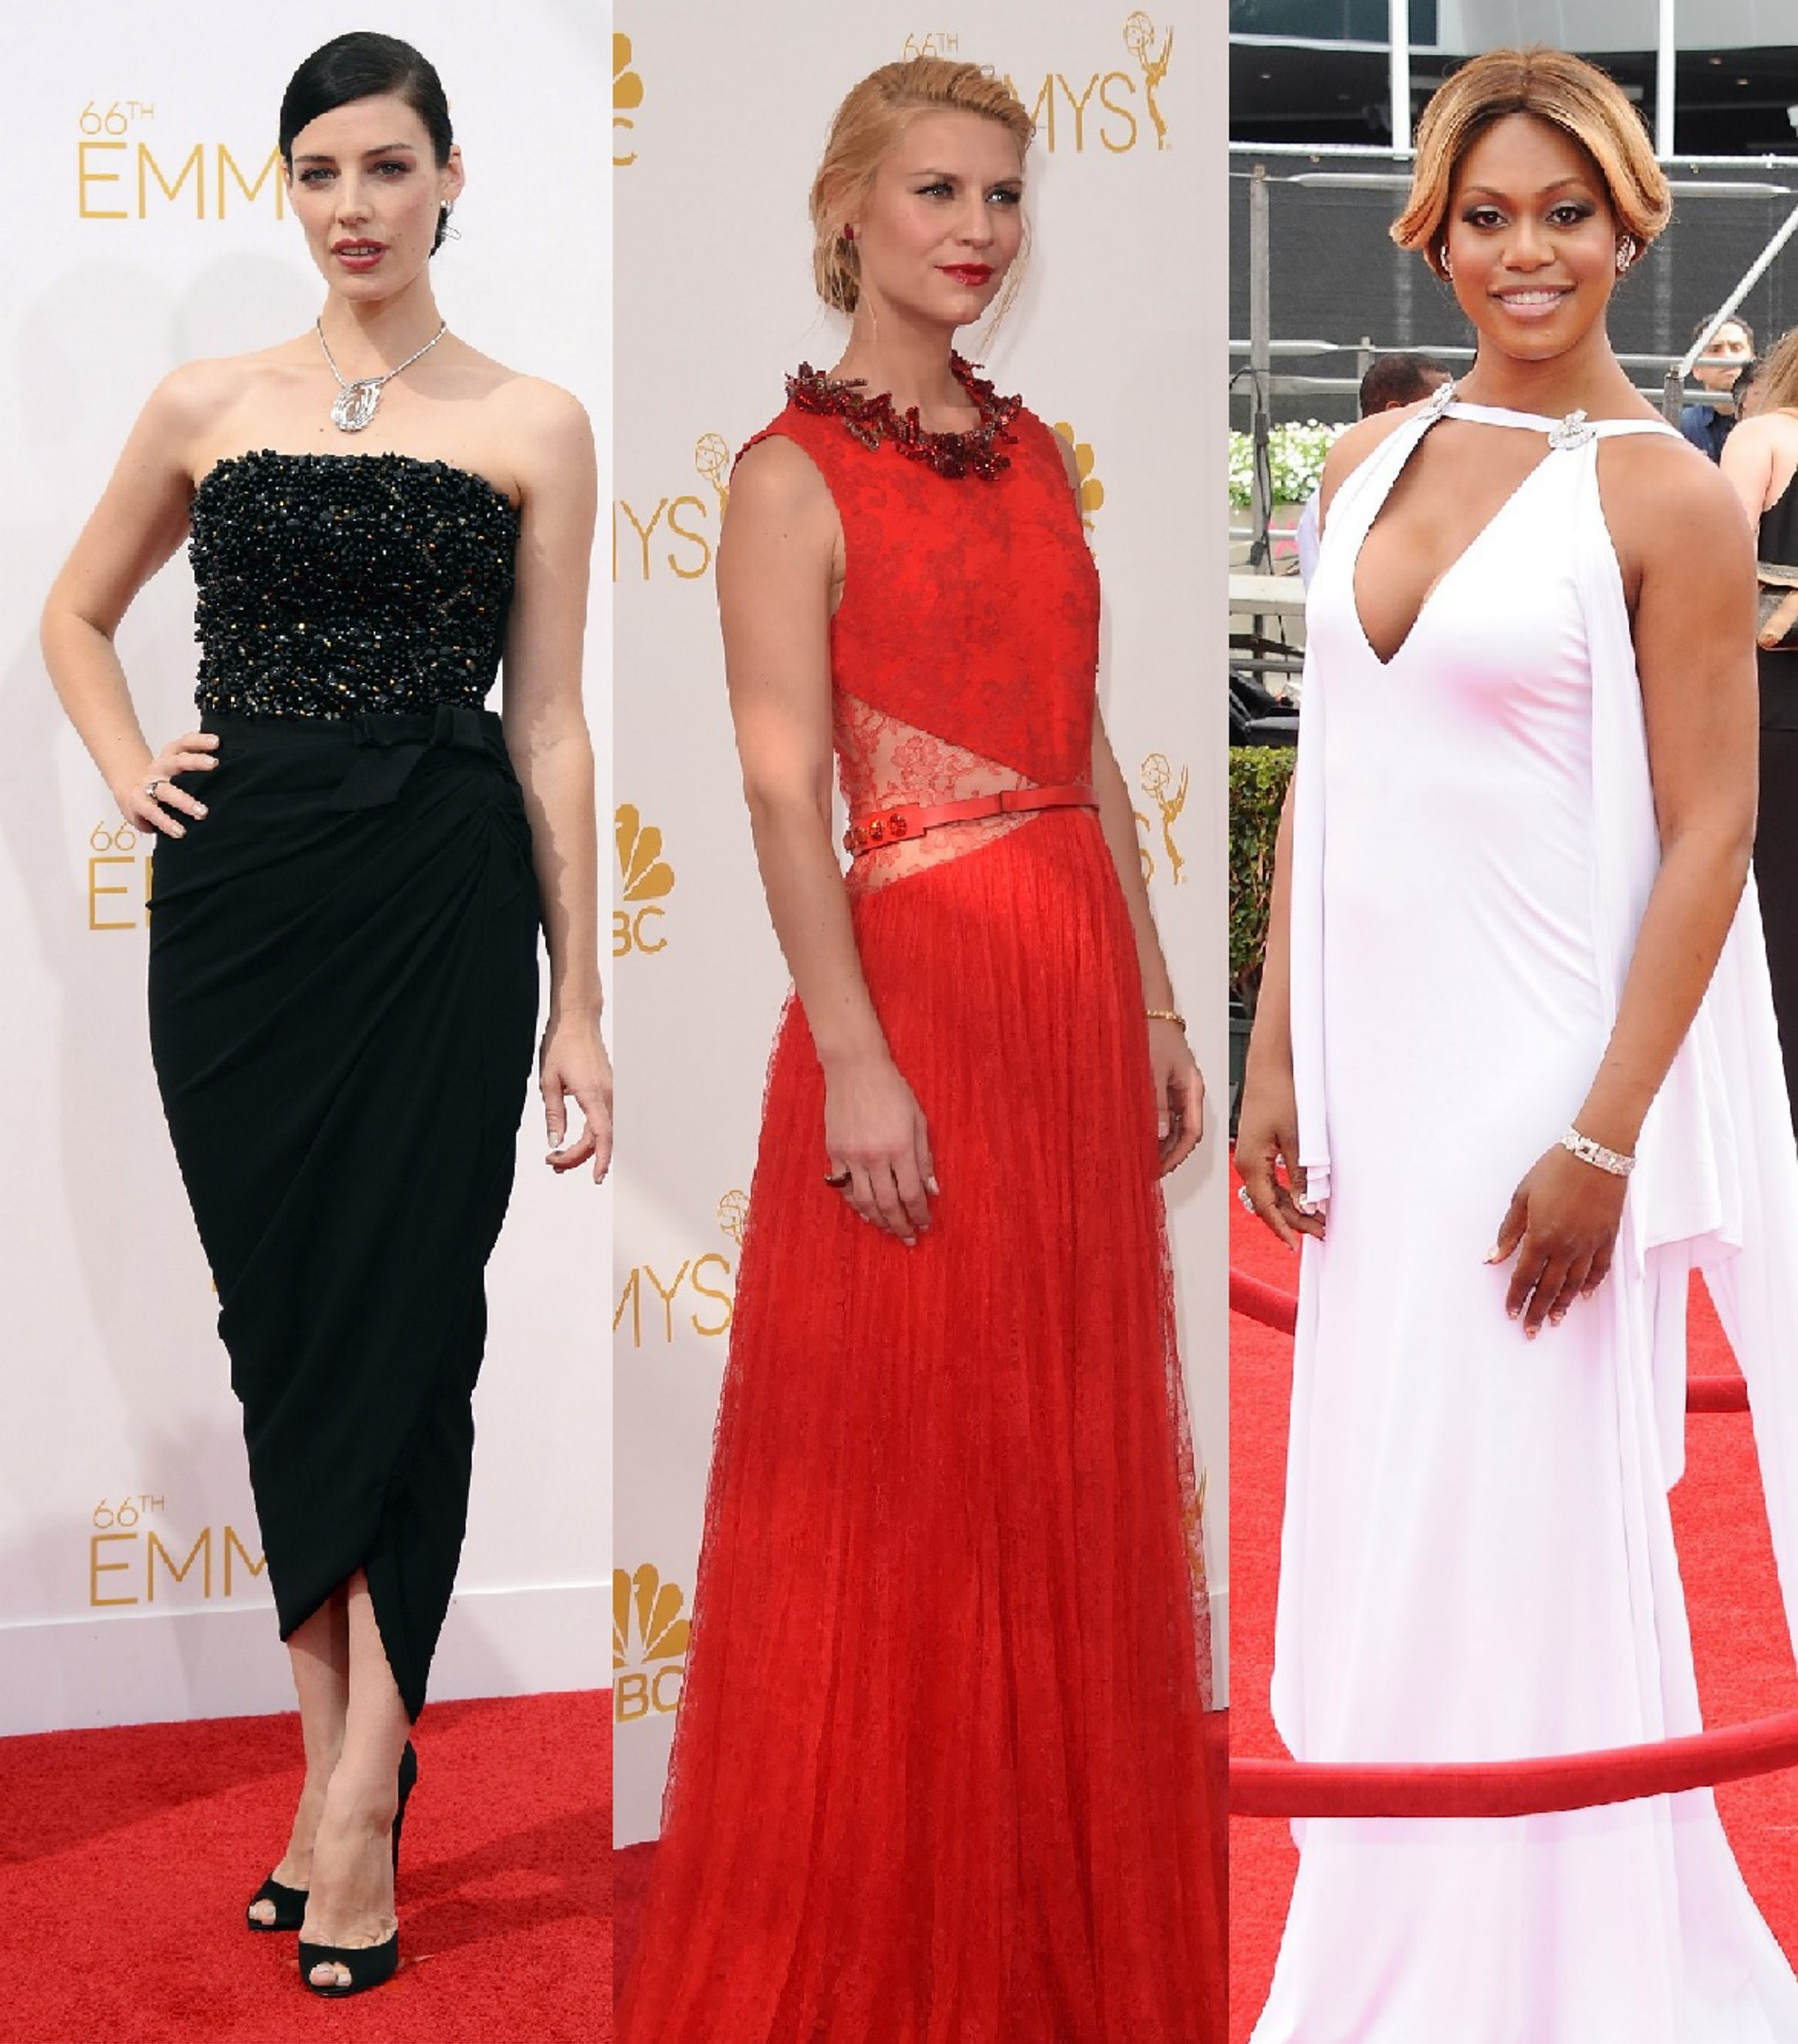 Fashions worn at Monday's Emmy Awards ceremony included Jessica Pare in Lanvin, Claire Danes in Givenchy and LaVerne Cox in Marc Bouwer. (Getty Images)